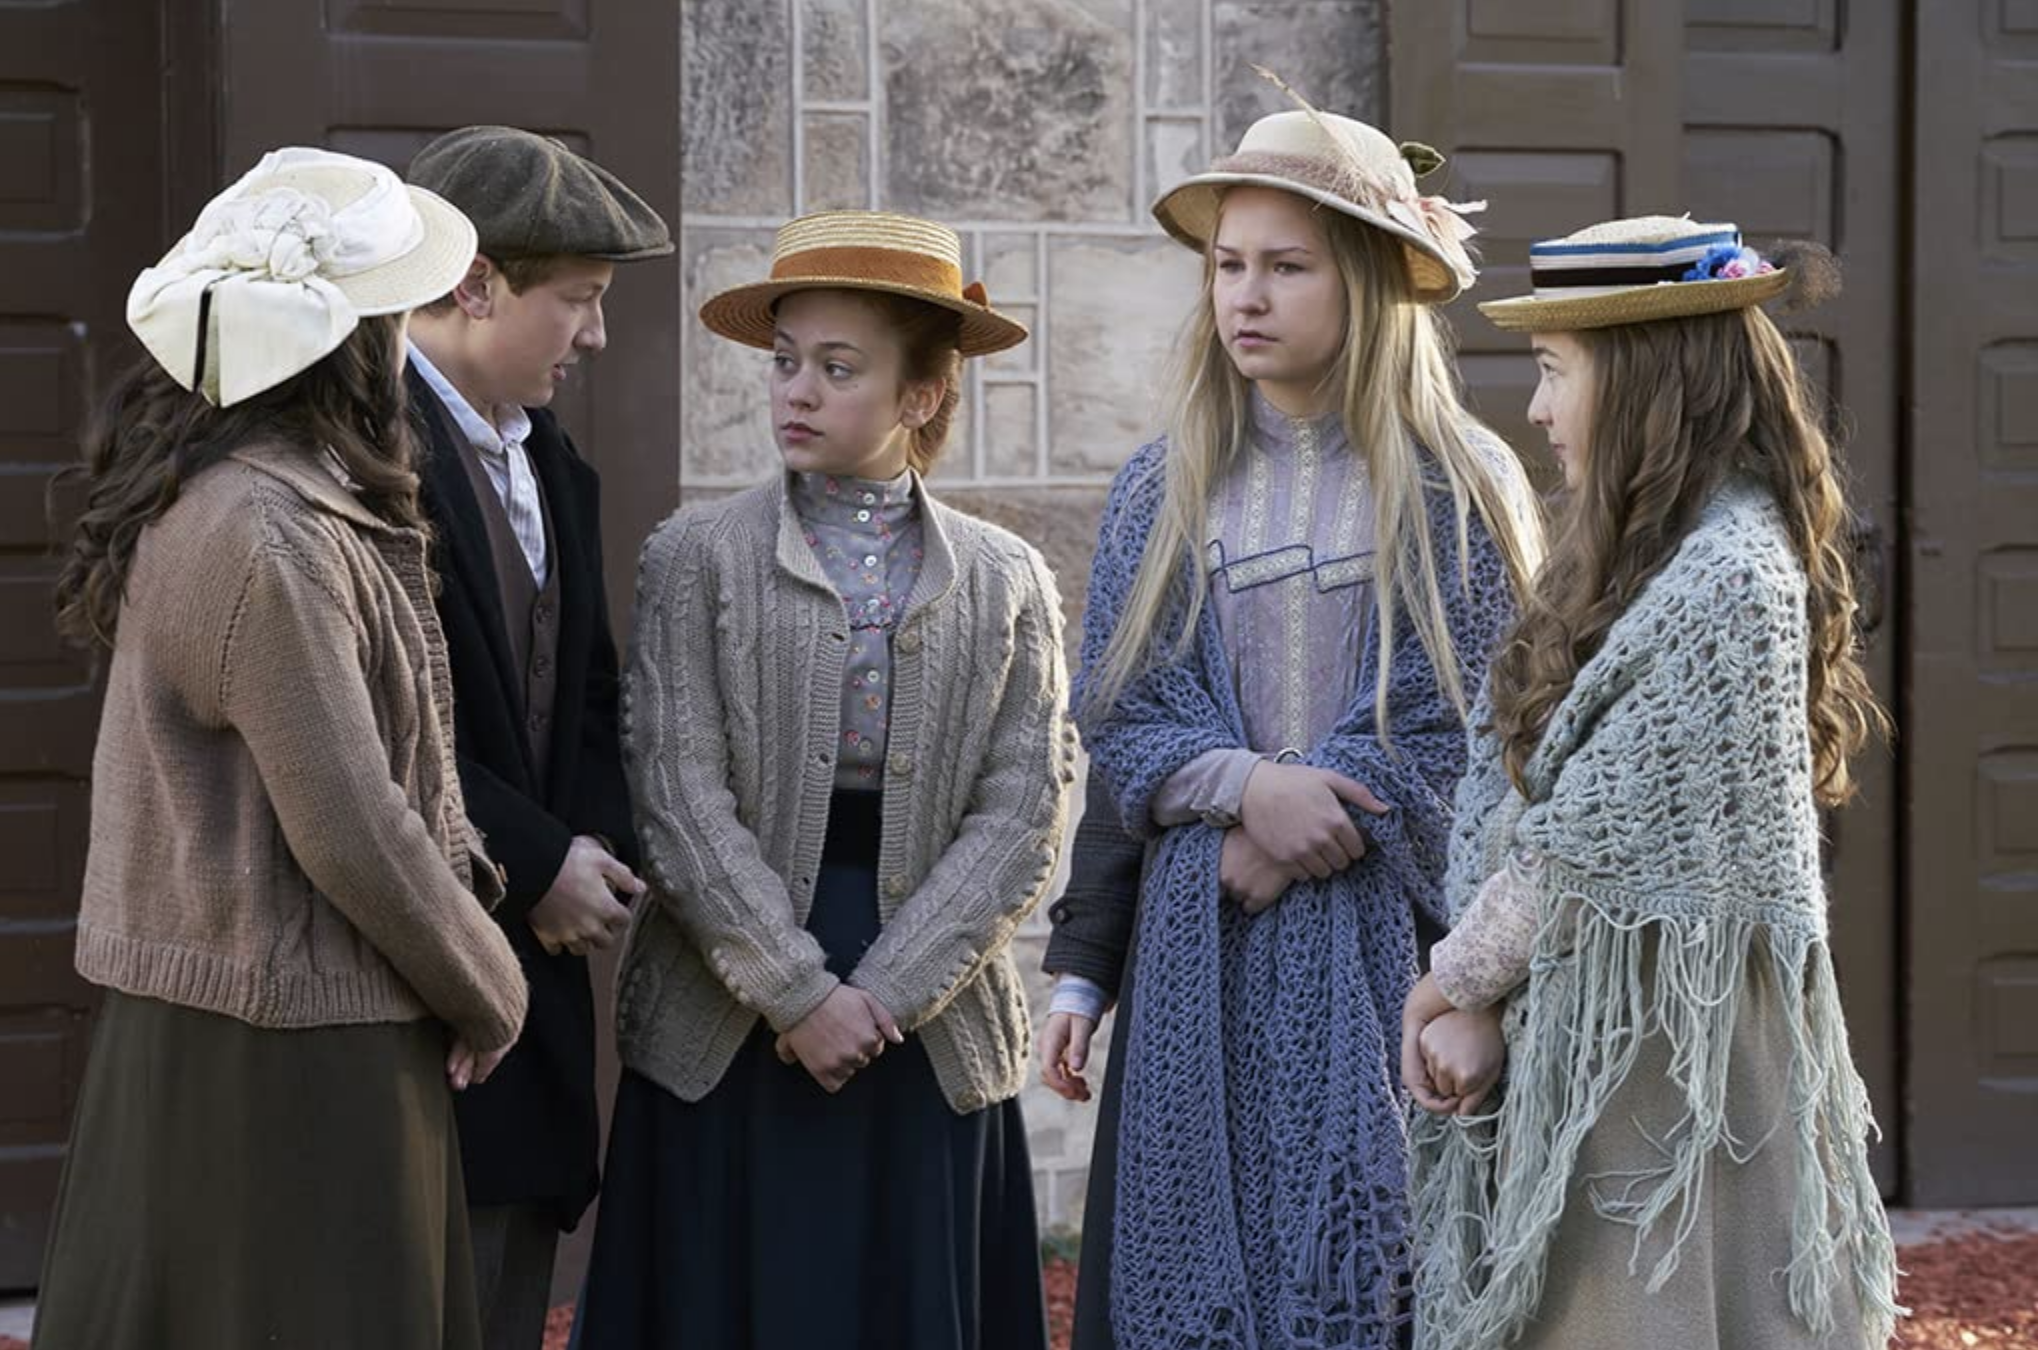 4 preteens in turn of the century clothes outside church school